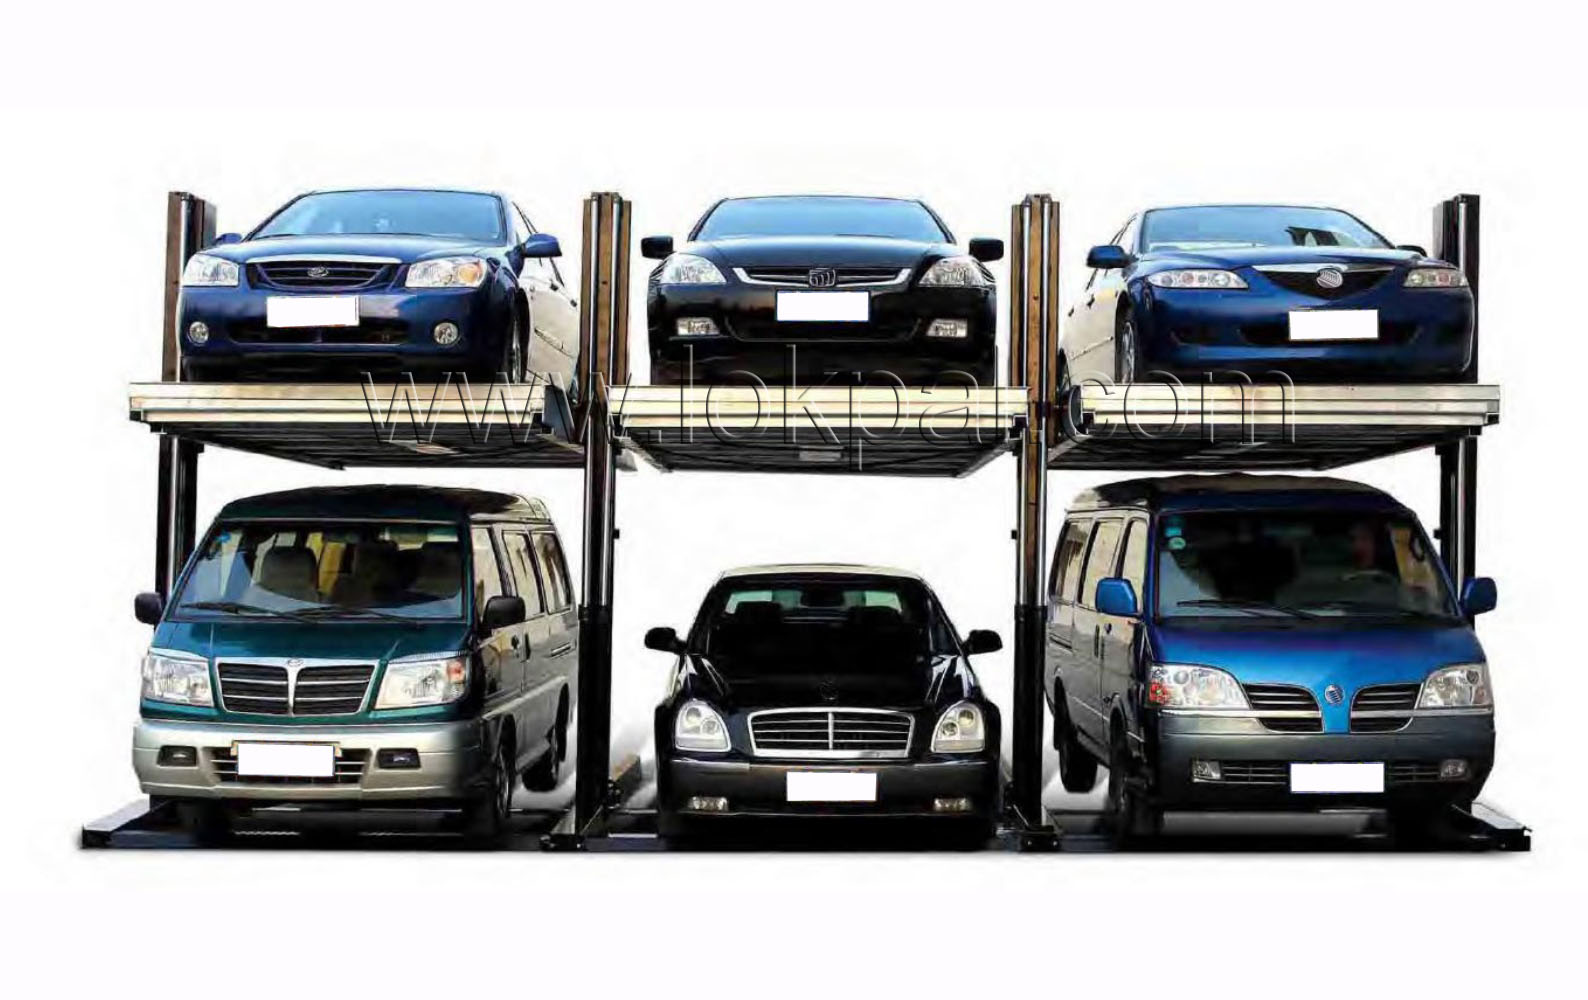 Two Post Parking Lift Sharing, Two Post Parking Lift Sharing Manufacturer, India